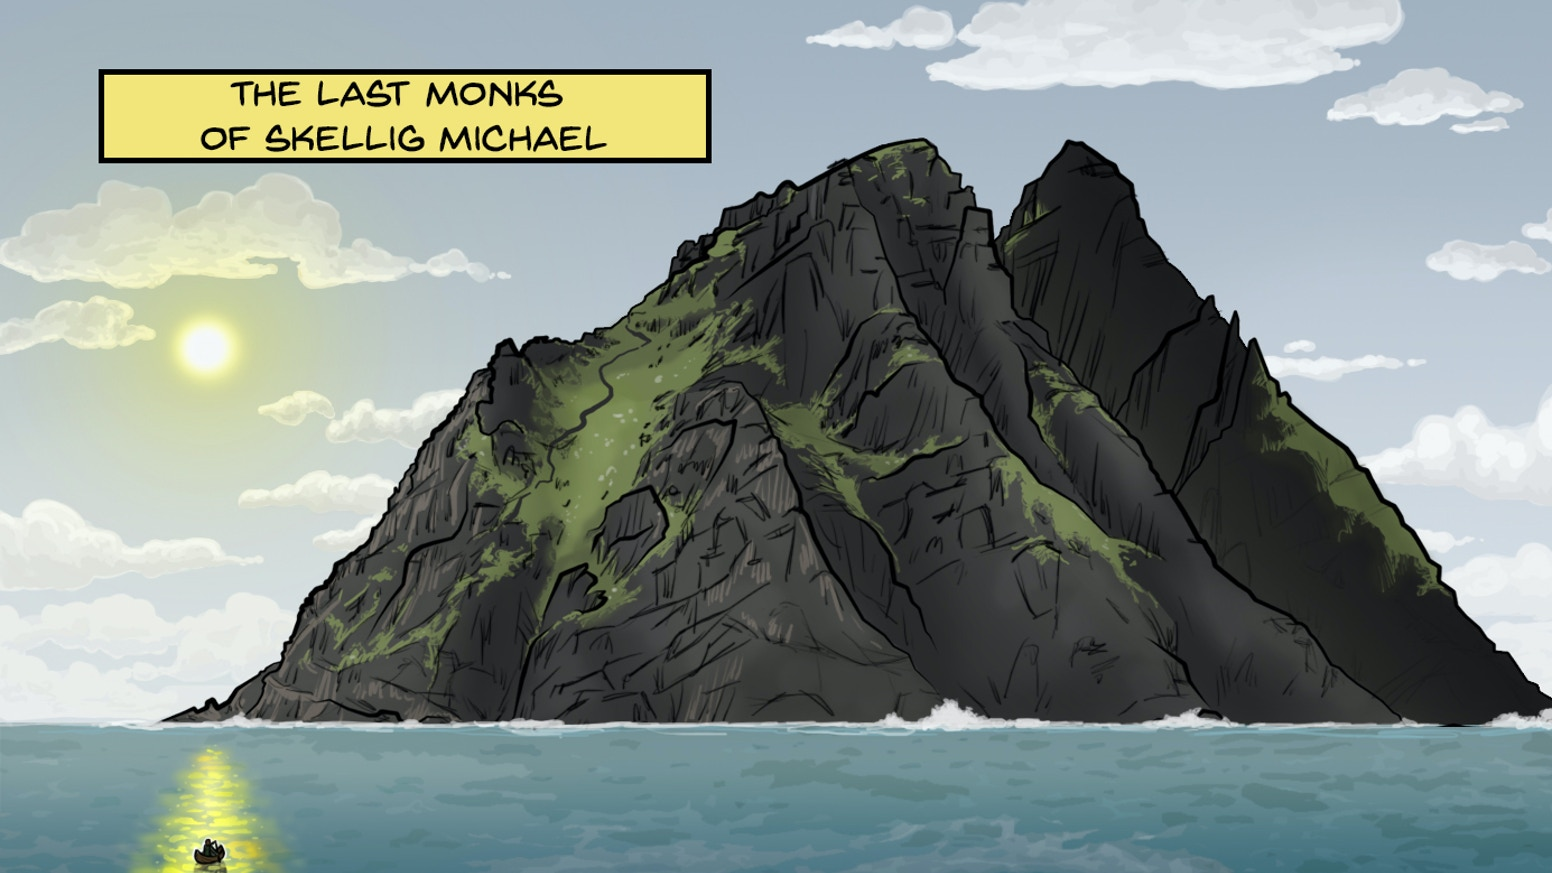 An exciting new comic book inspired by the Star Wars filming location Skellig Michael, and the island's ancient real-life history.